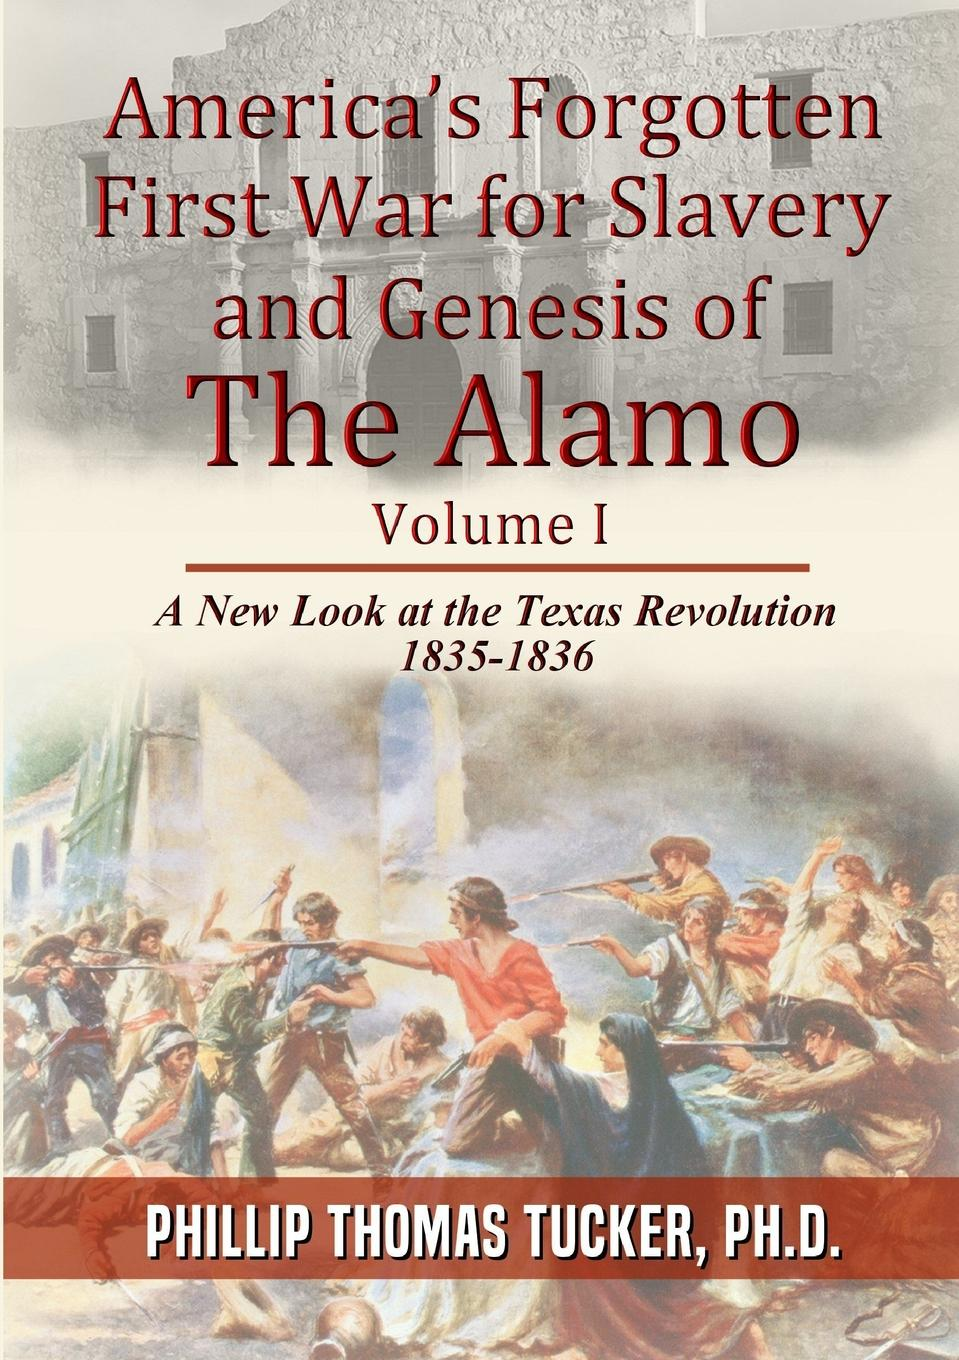 Phillip Thomas Tucker AmericaOs Forgotten First War for Slavery and Genesis of The Alamo thomas abel charles the gospel of slavery